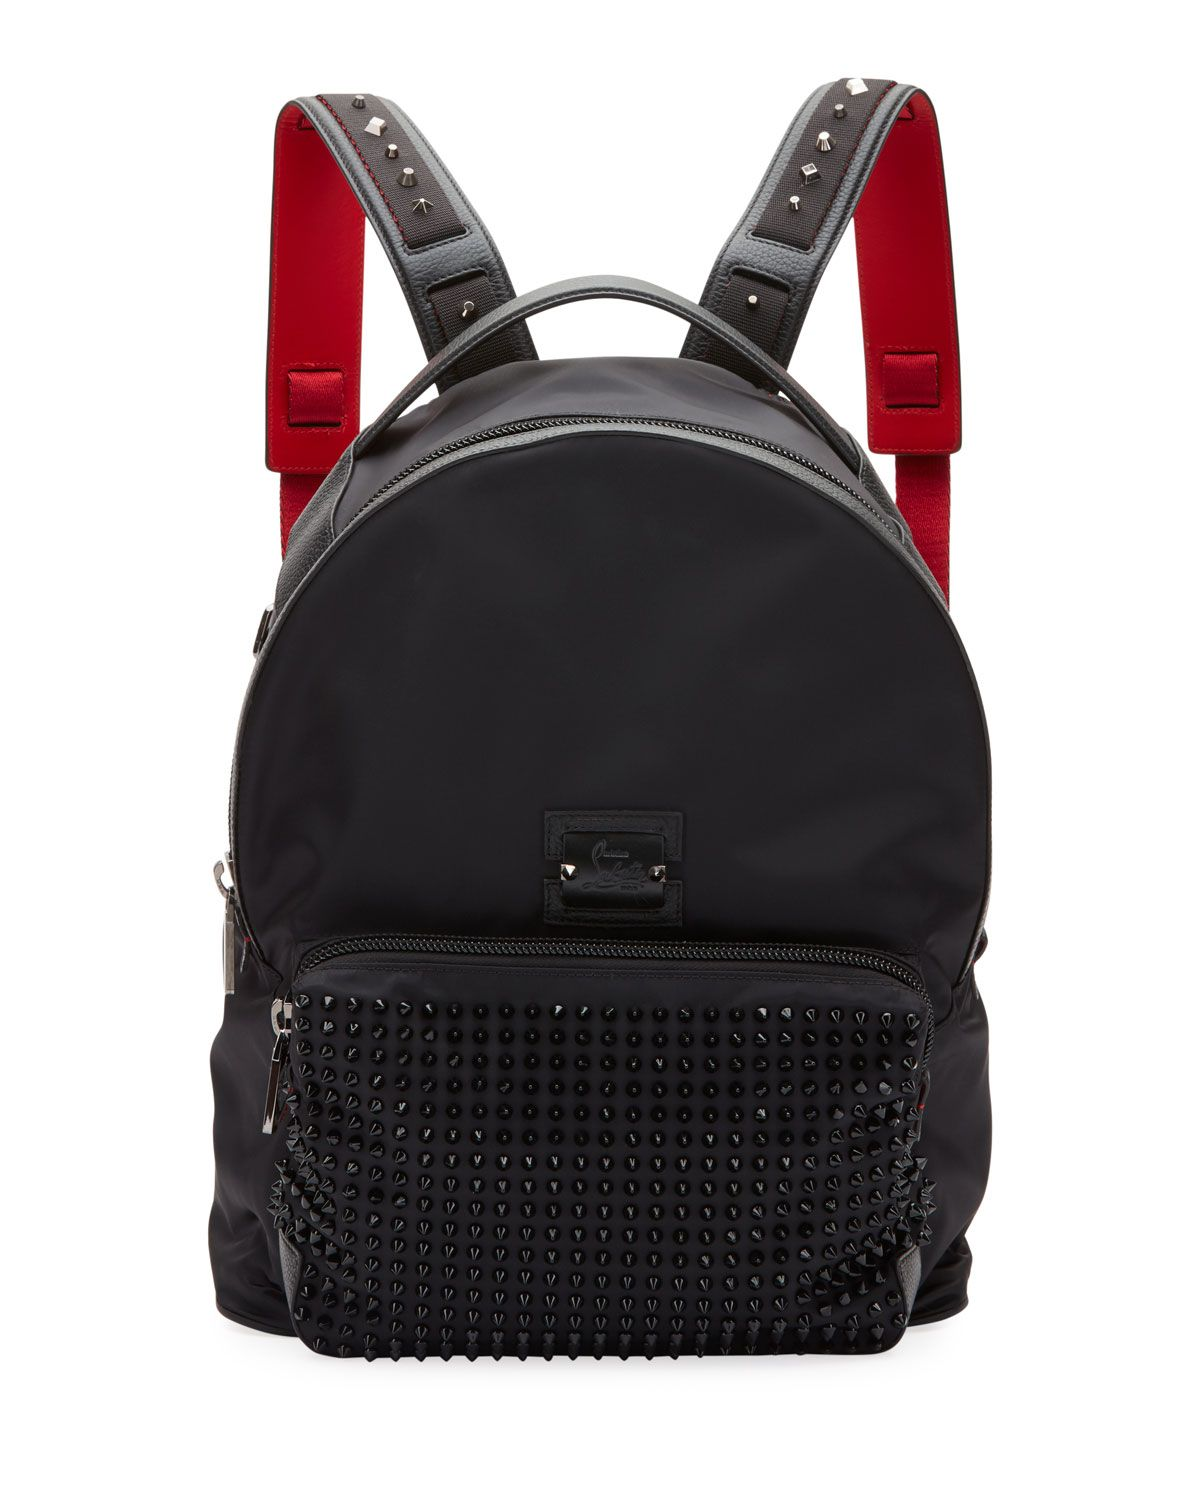 498caadfea CHRISTIAN LOUBOUTIN MEN S BACKLOUBI EMPIRE SPIKES BACKPACK.   christianlouboutin  bags  leather  lining